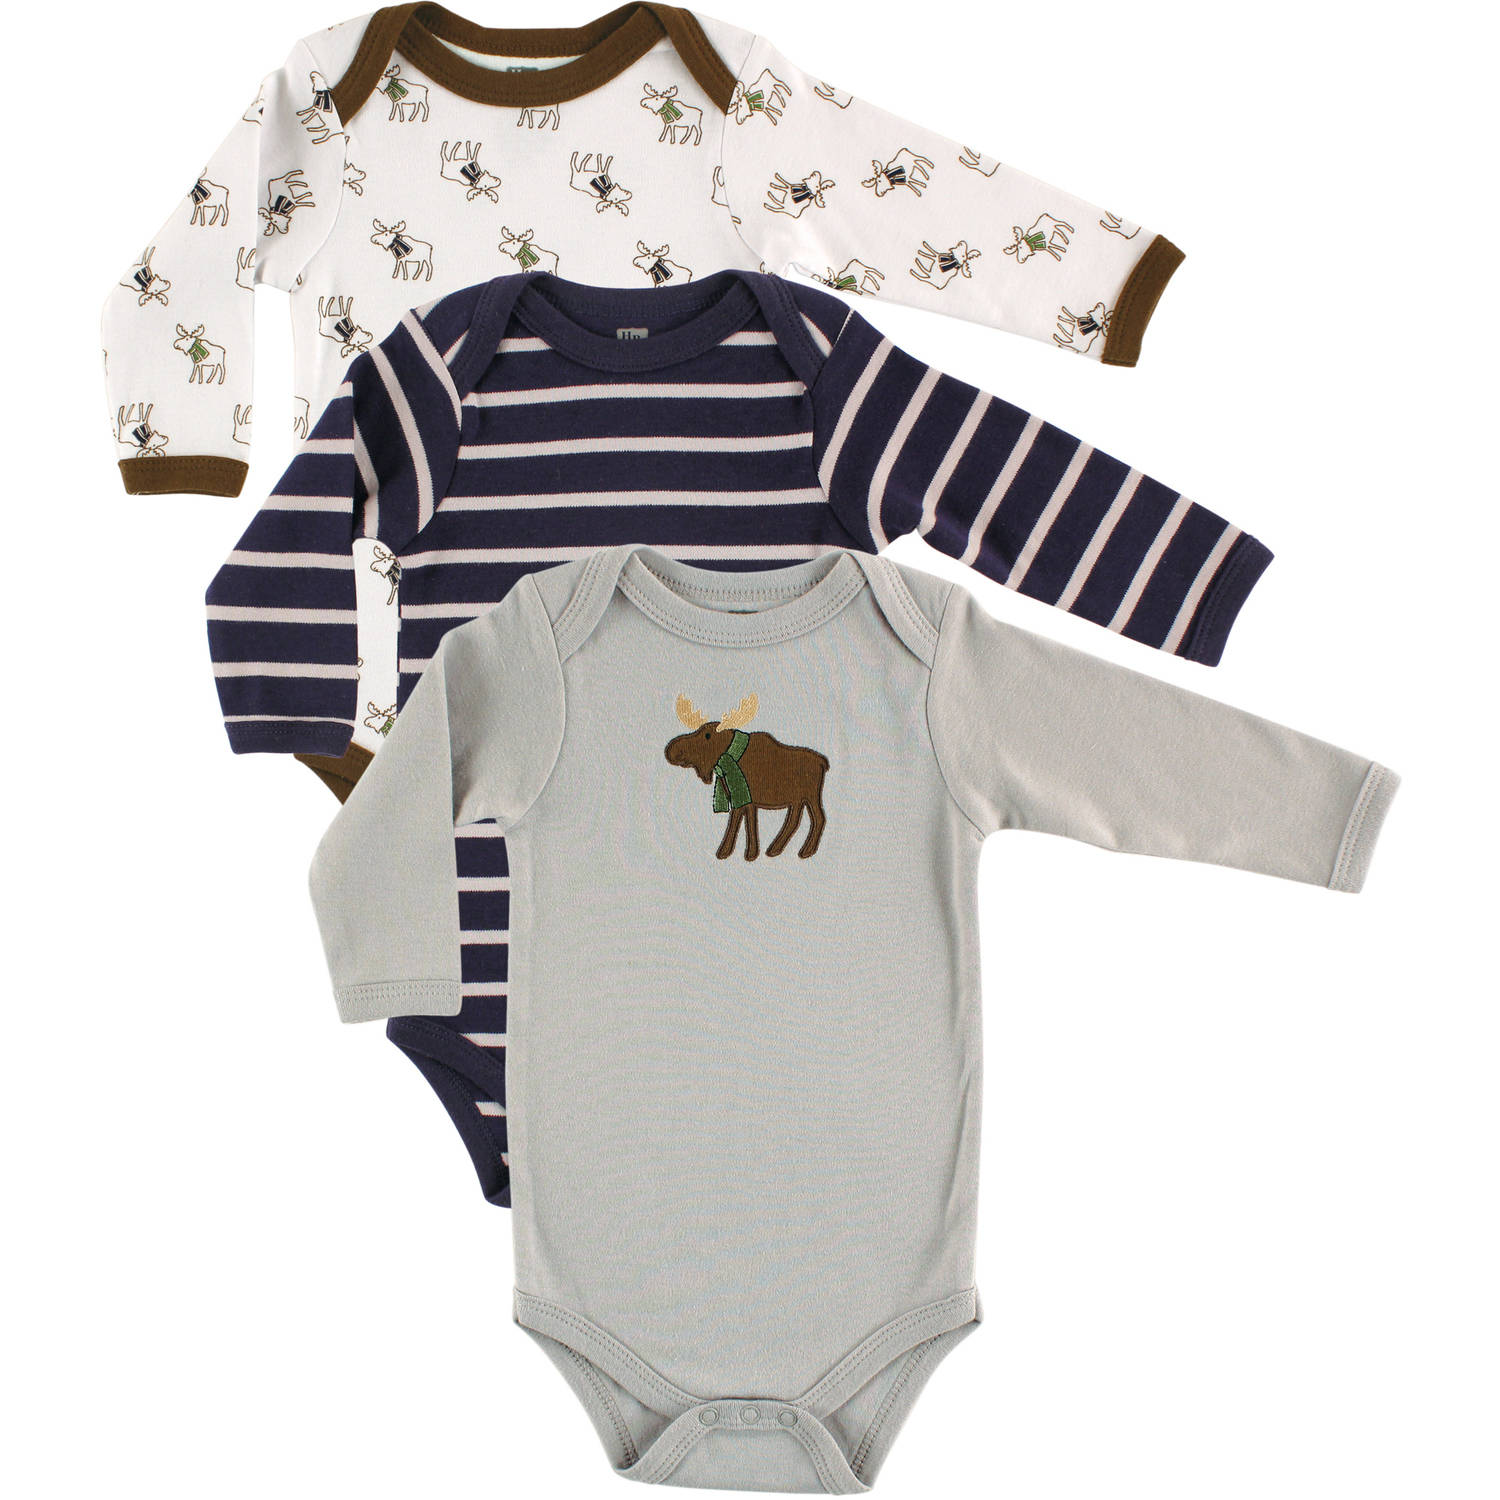 Hudson Baby Newborn Baby Boys Bodysuit Long Sleeve 3-Pack - Moose